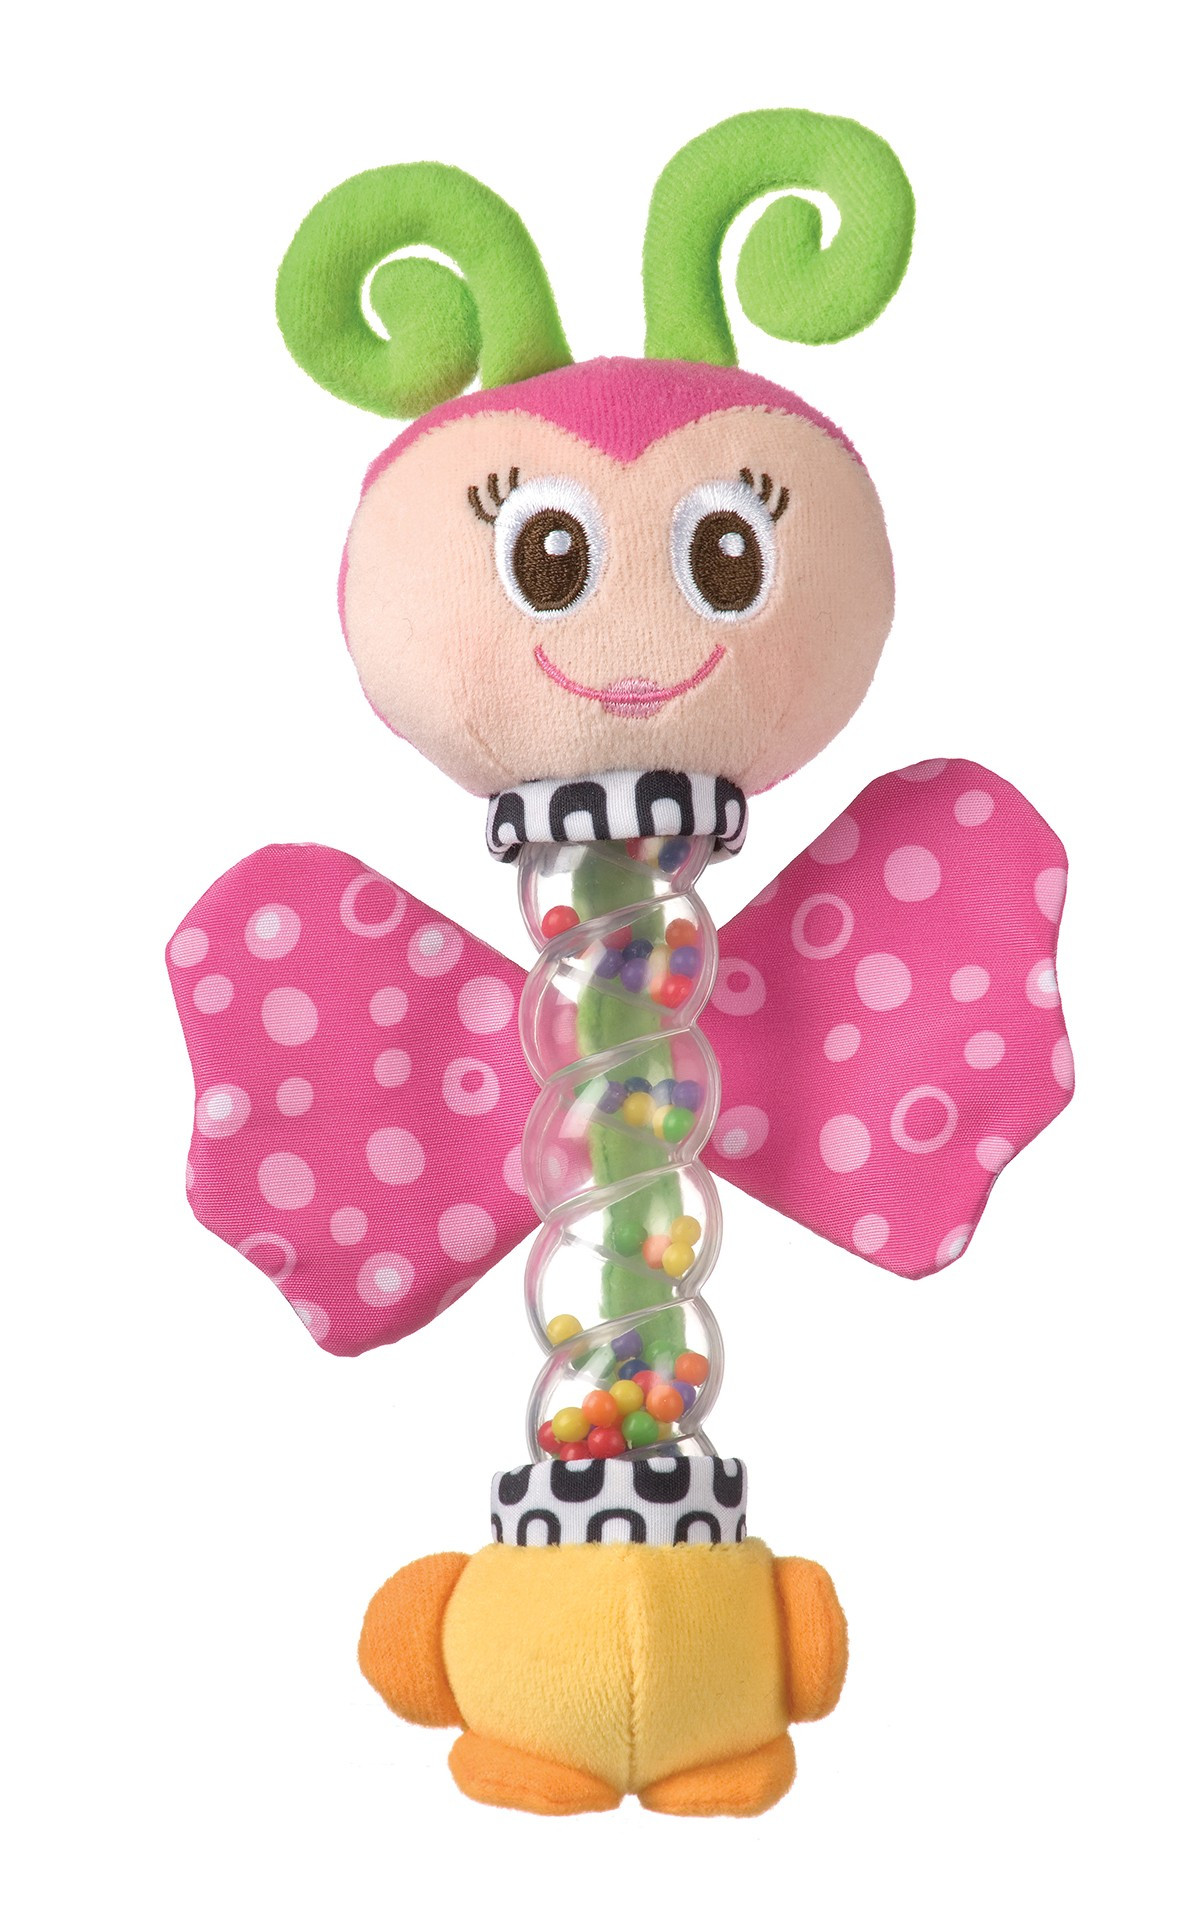 Playgro Twinkle Stick Butterfly 24cm